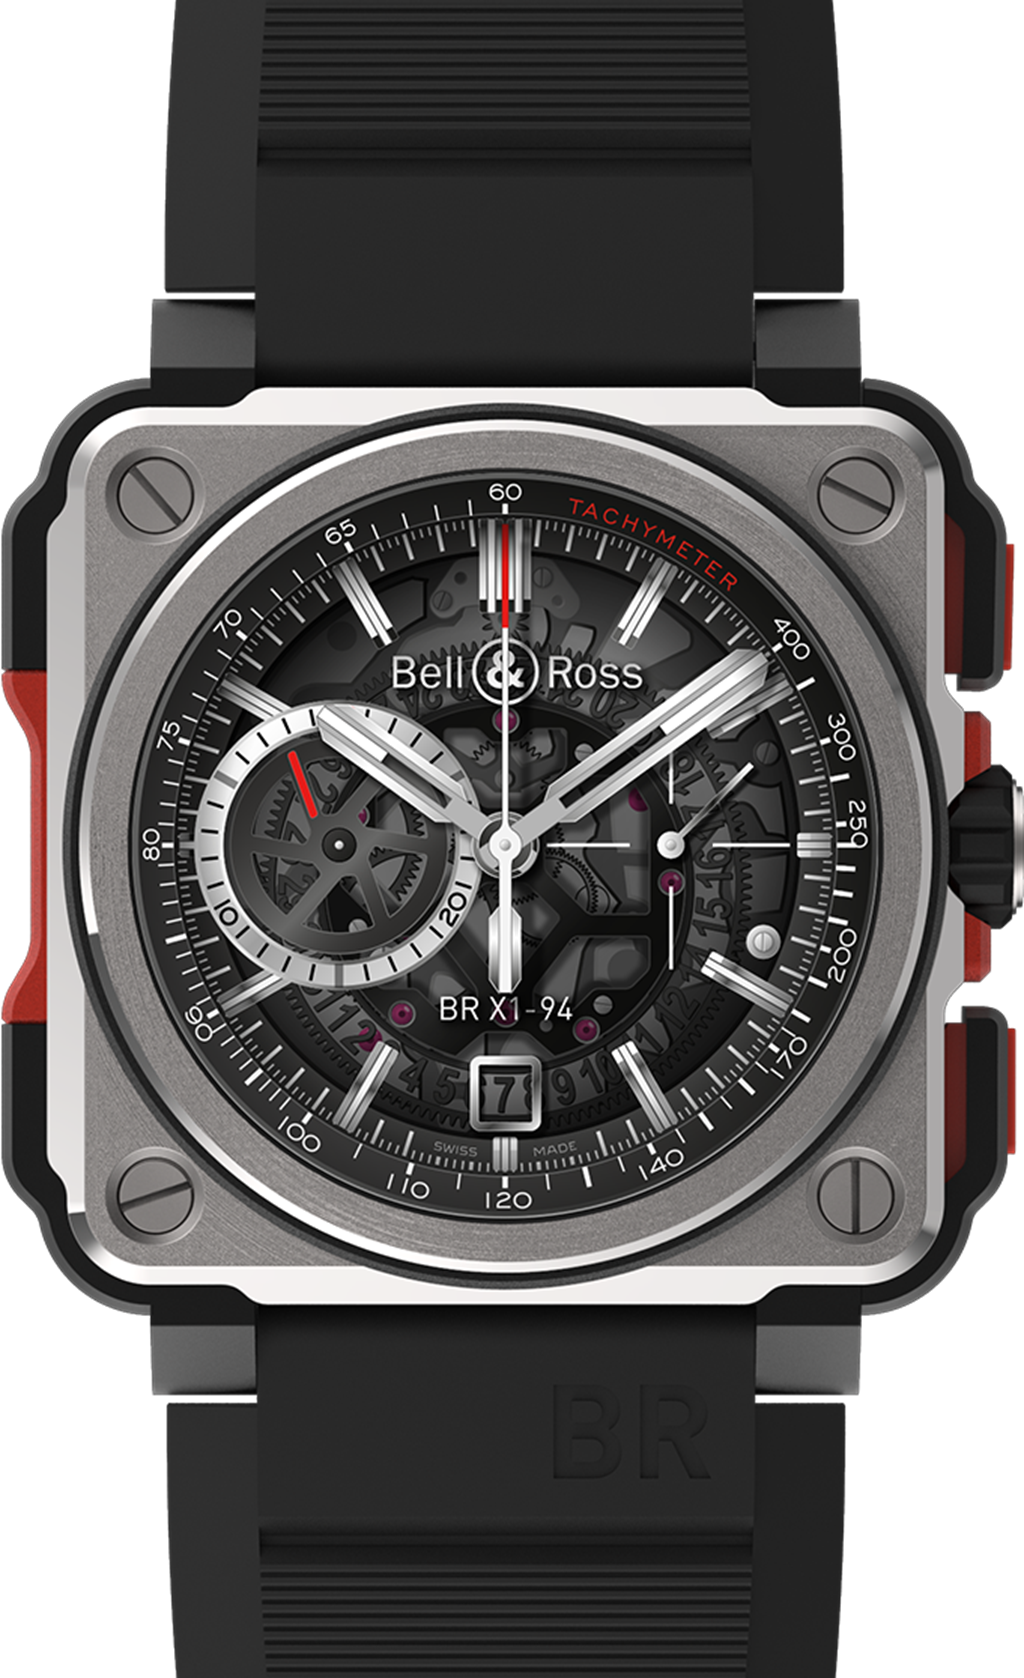 The night's highlight - the BR-X1 skeleton chronograph